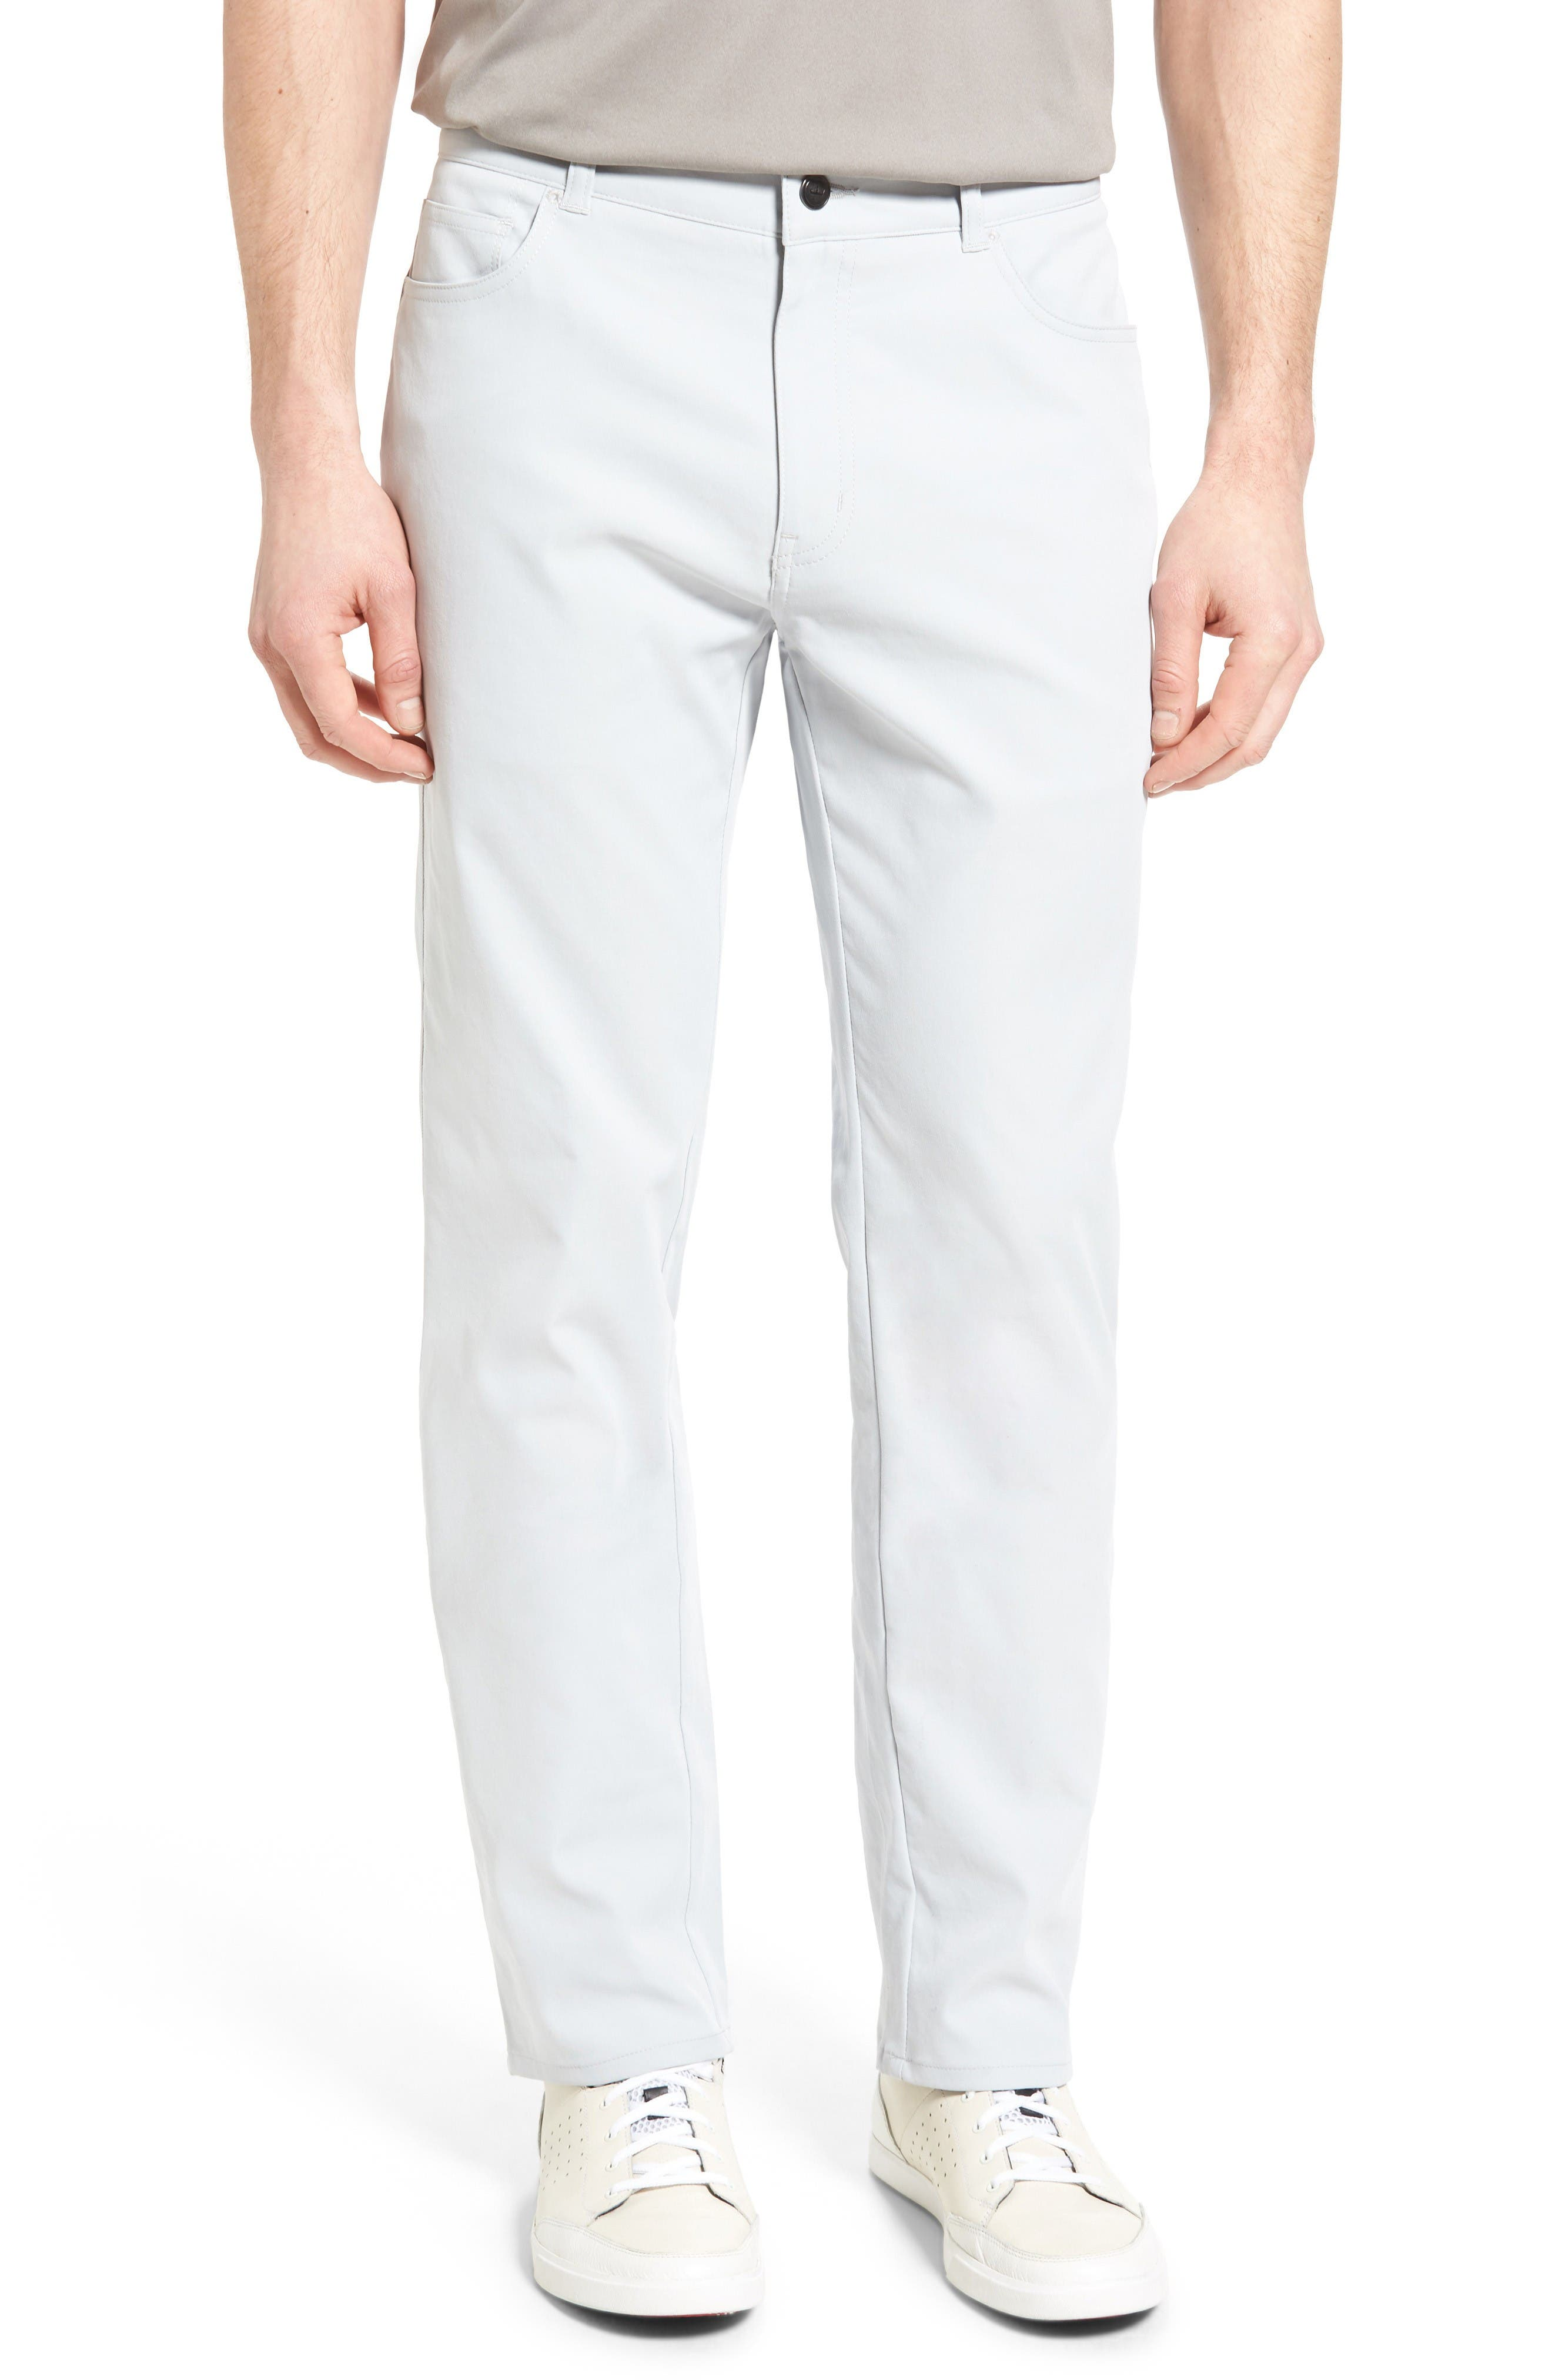 PETER MILLAR EB66 Performance Pants